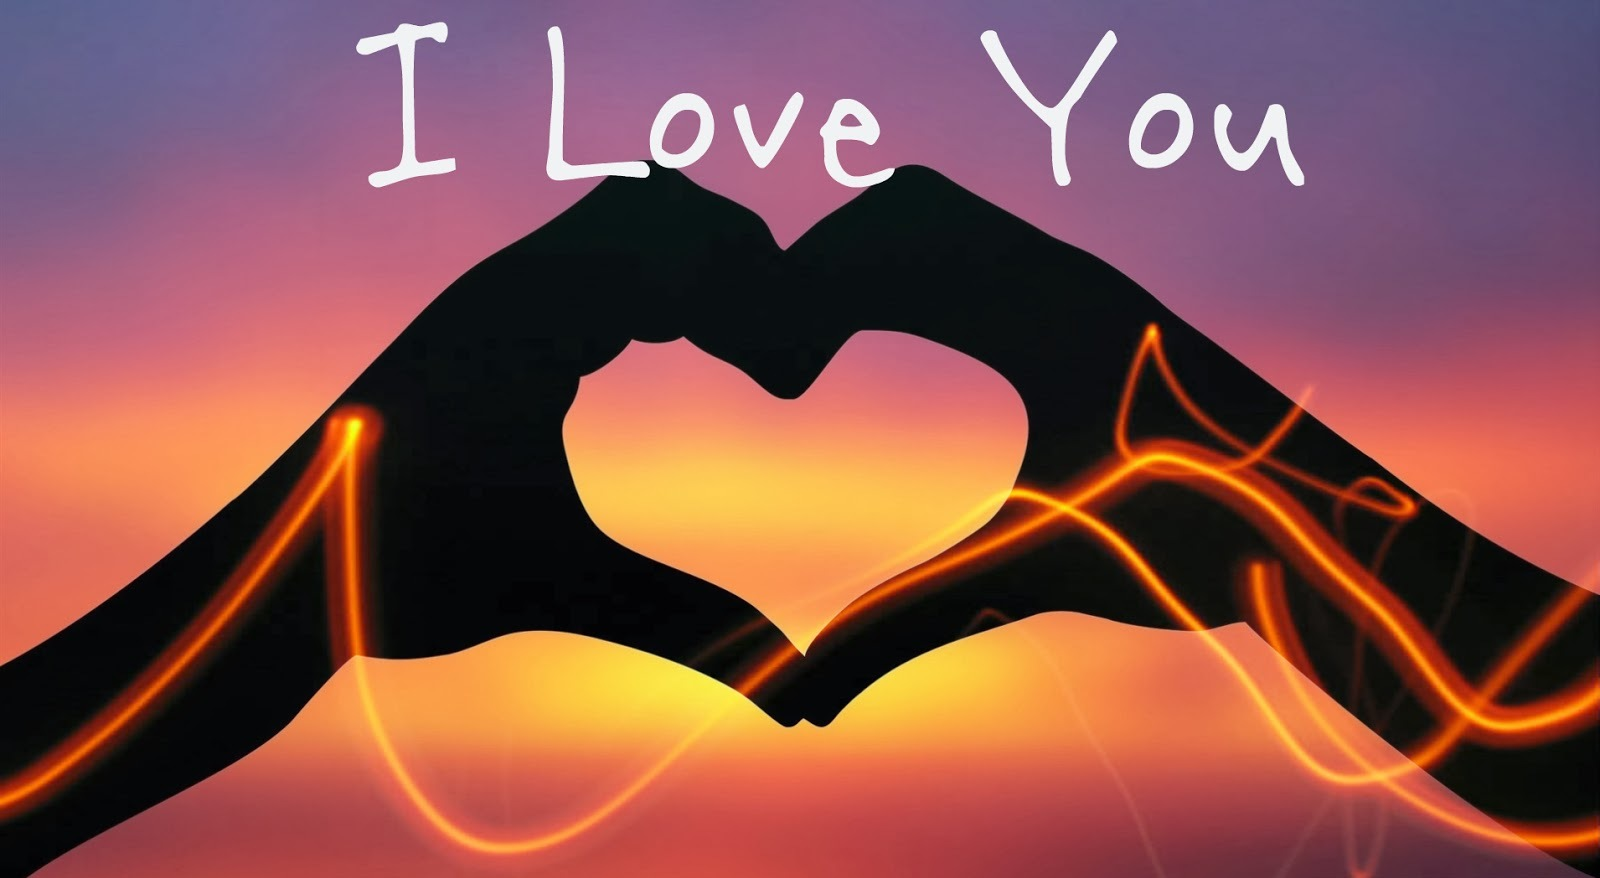 Beautiful Wallpaper I Love You : I Love You Wallpapers, Pictures, Images